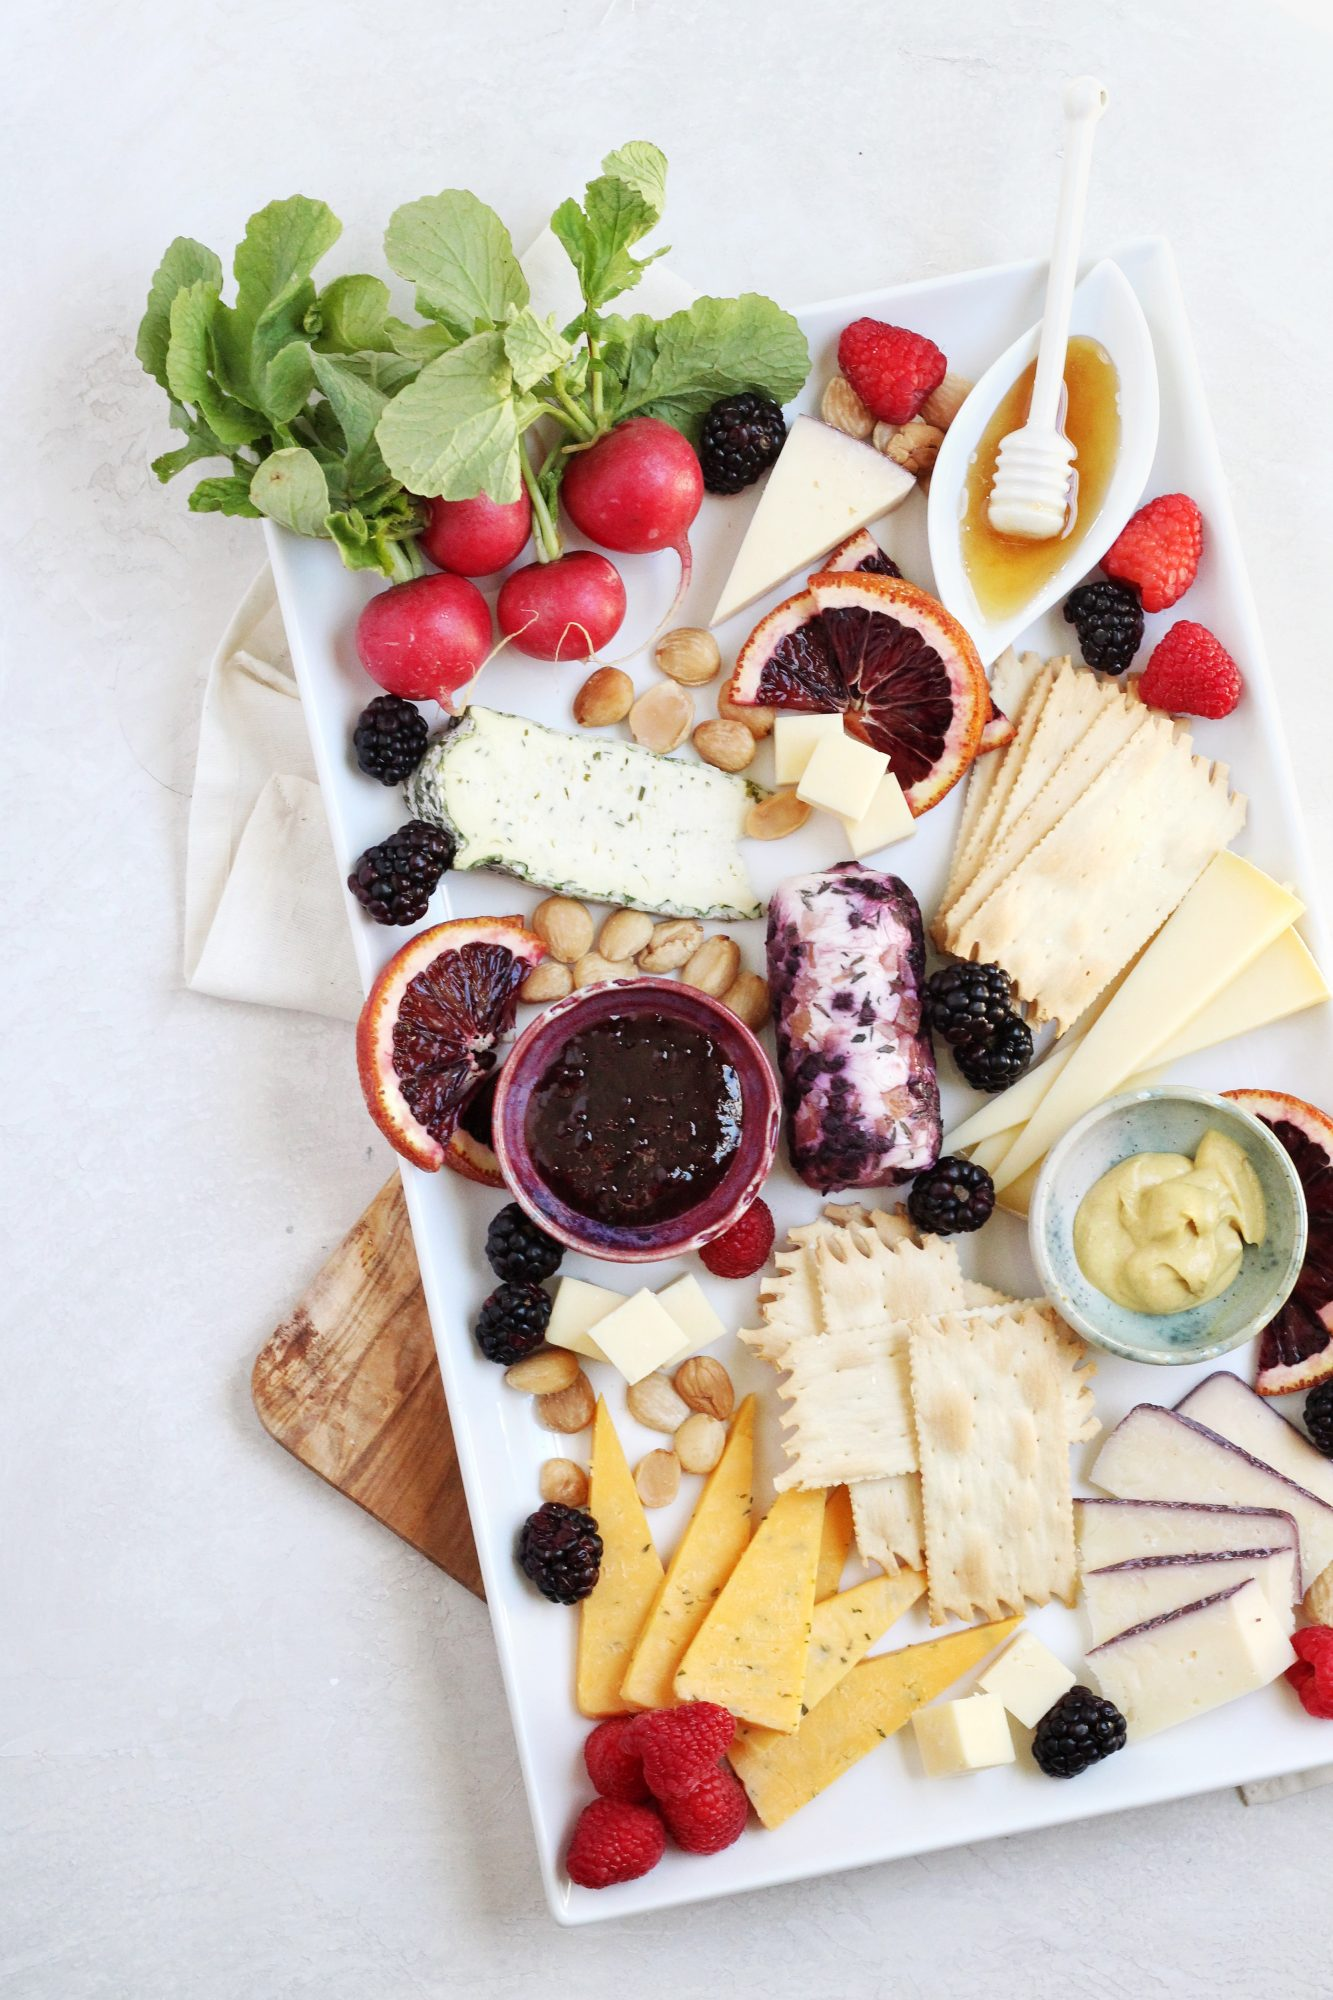 Cheese board ideas